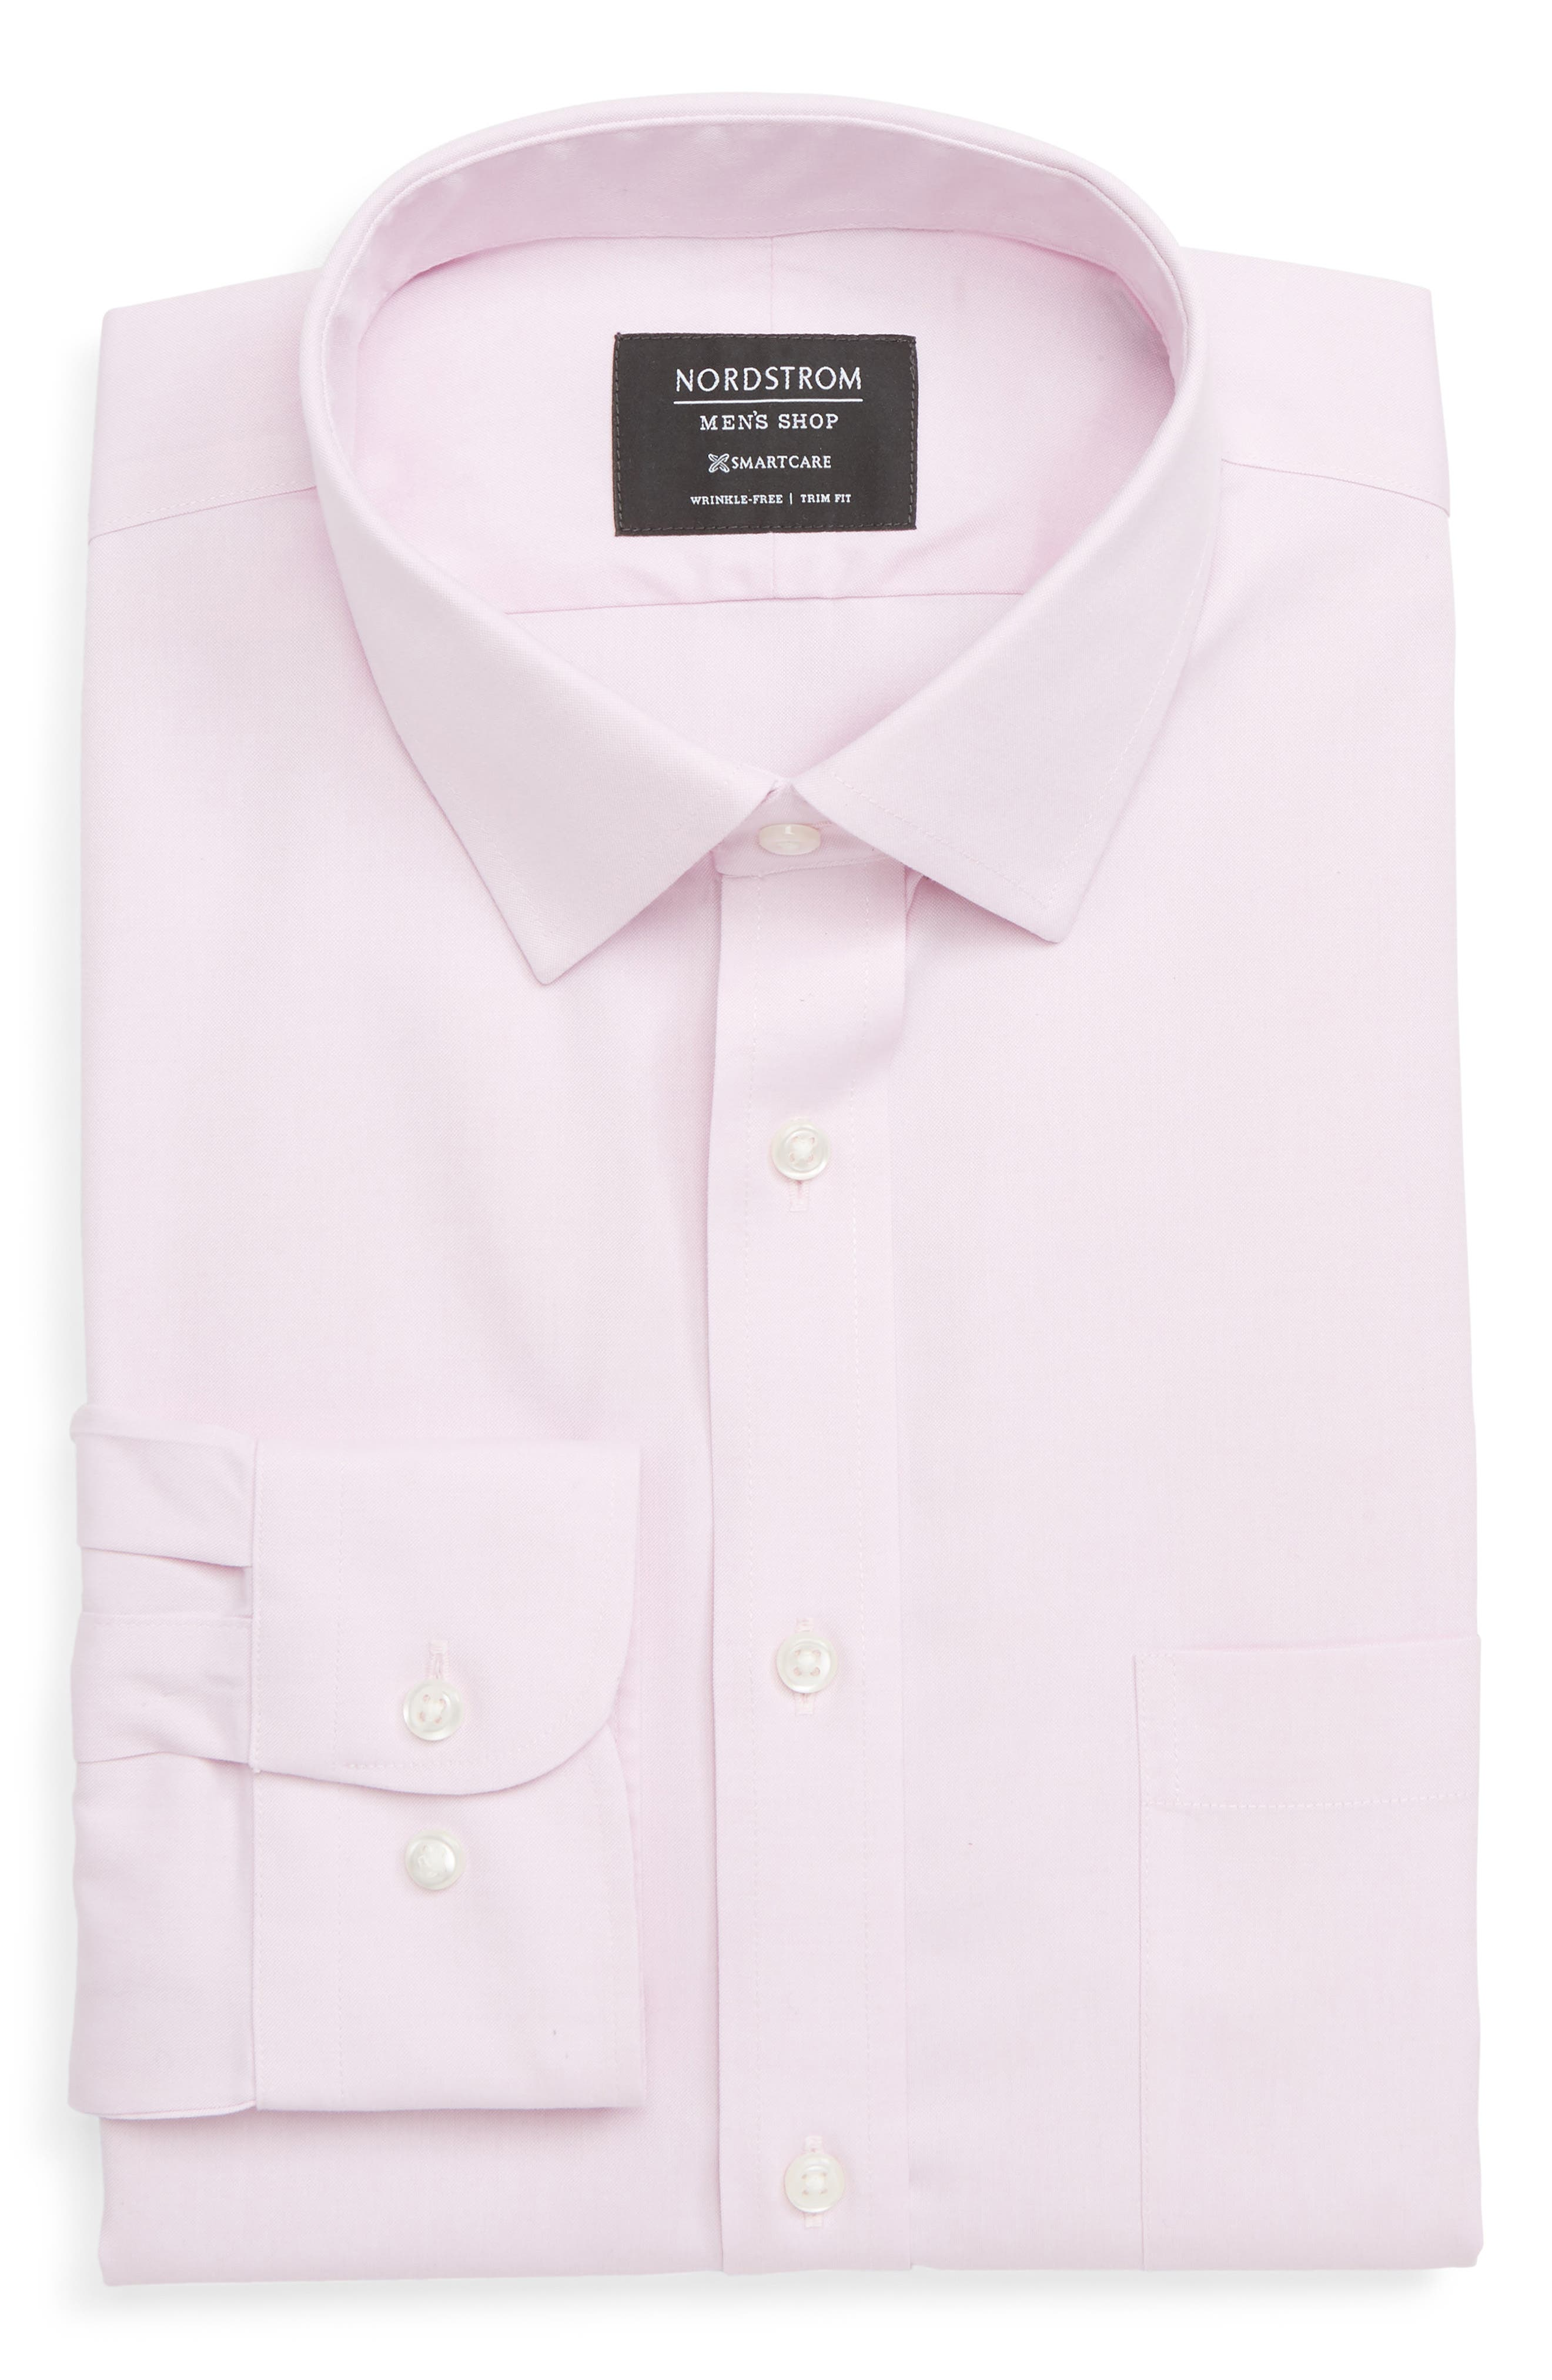 Nordstrom Shop Smartcare(TM) Trim Fit Solid Dress Shirt, 5.5 34/35 - Pink